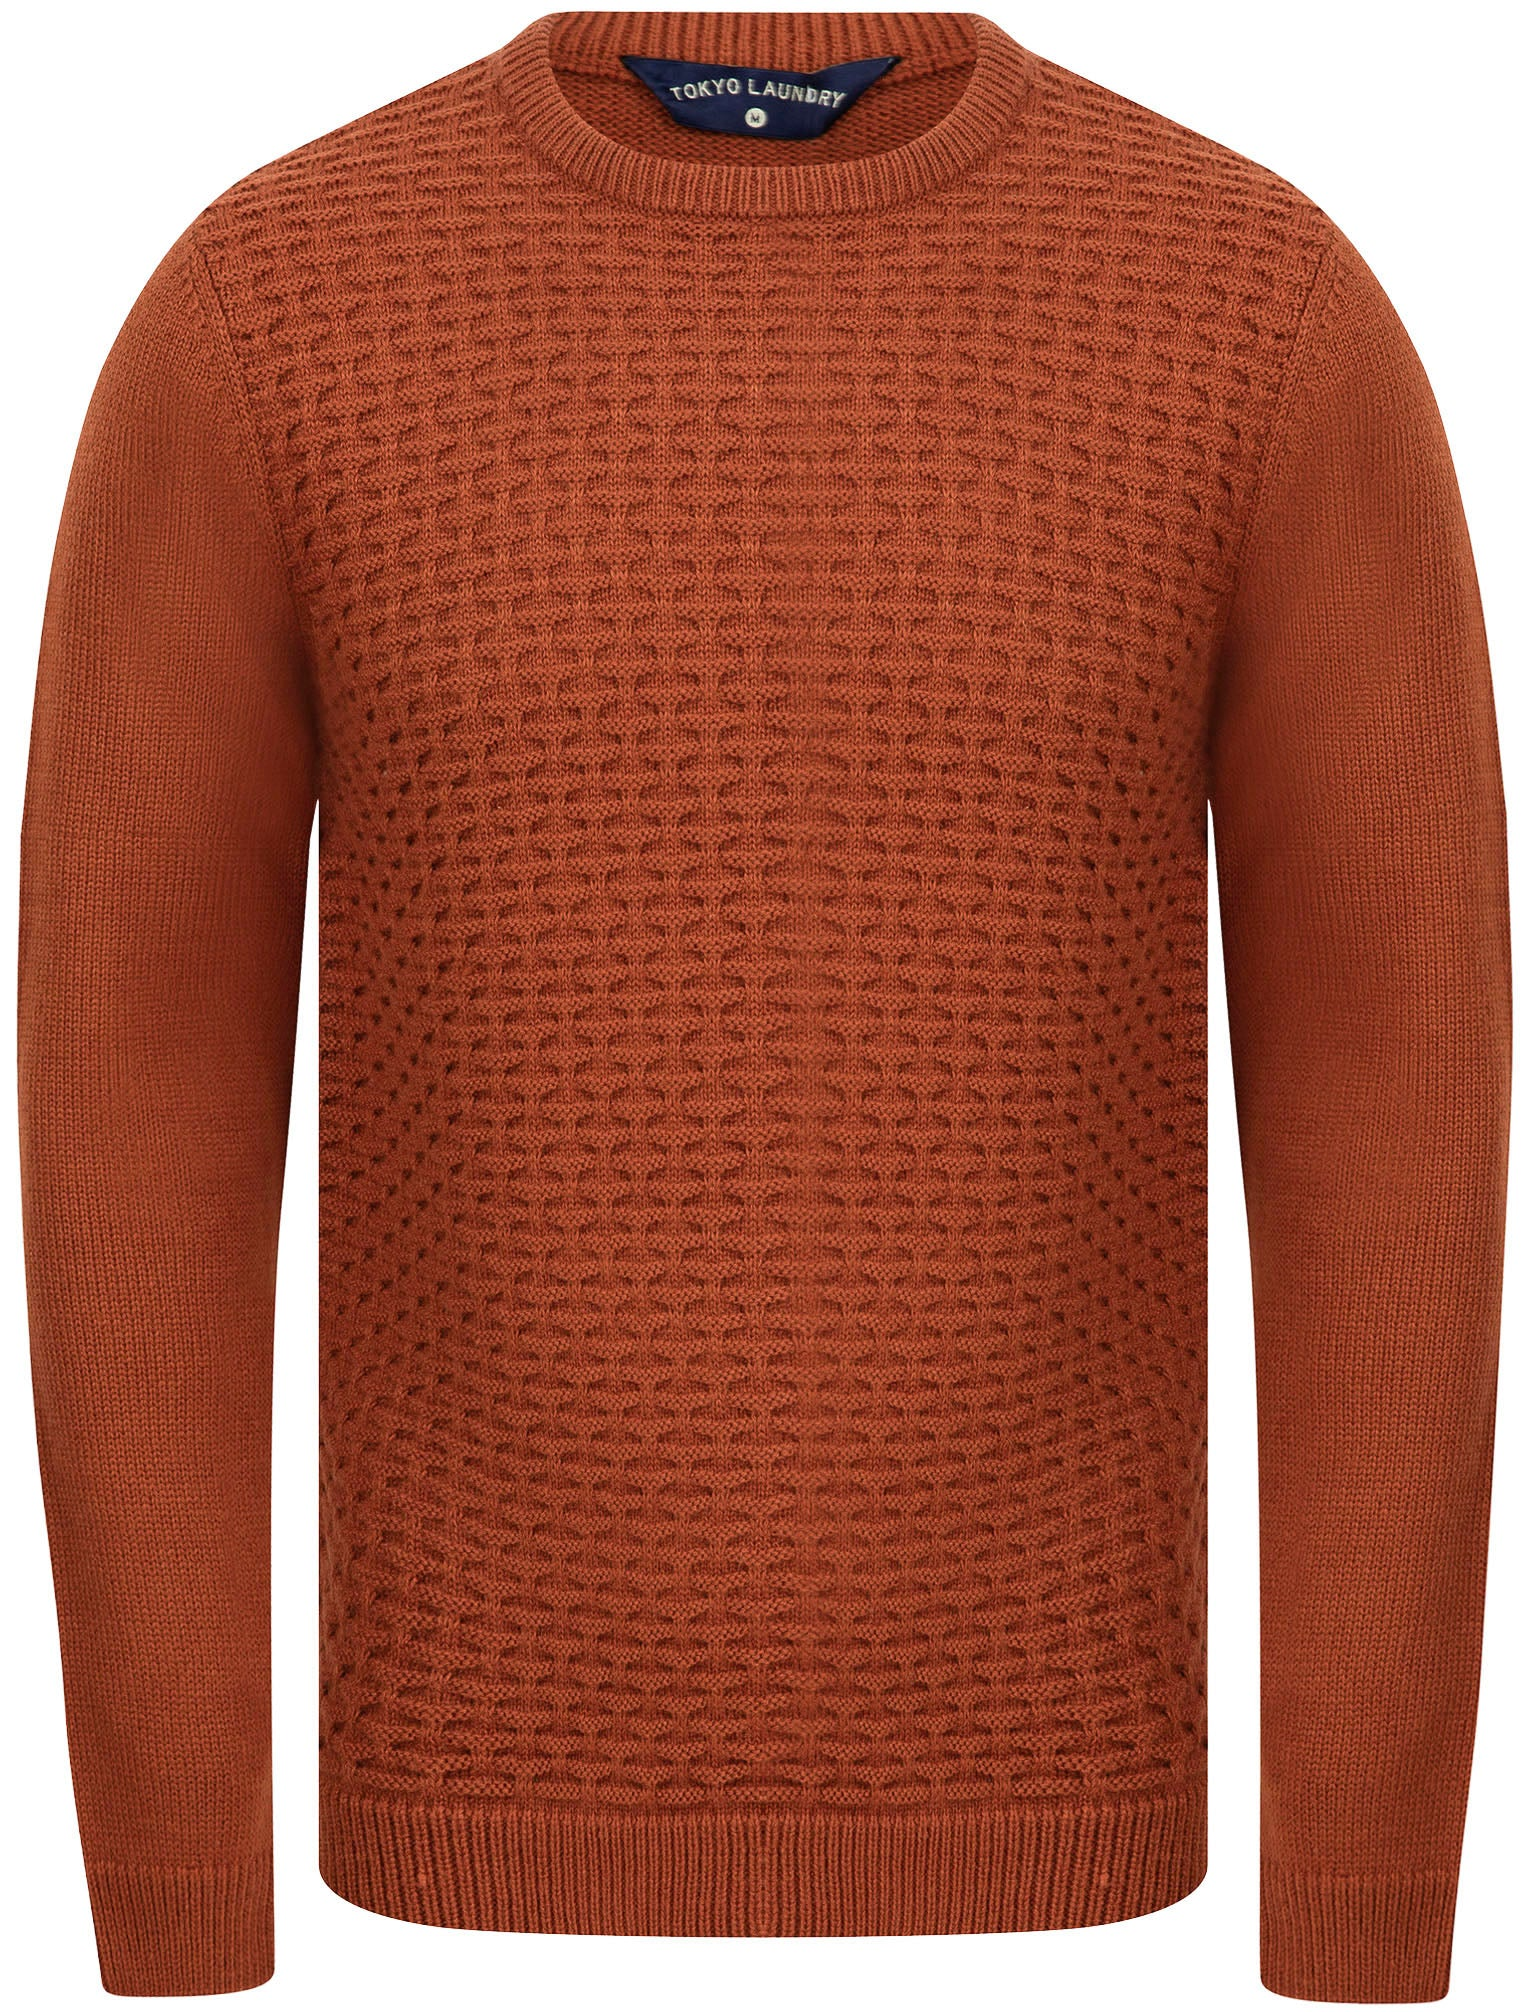 Men's Vintage Sweaters, Retro Jumpers 1920s to 1980s Jumpers Shikara Stitched Panel Wool Blend Knitted Jumper in Rust - Tokyo Laundry  L - Tokyo Laundry £24.99 AT vintagedancer.com